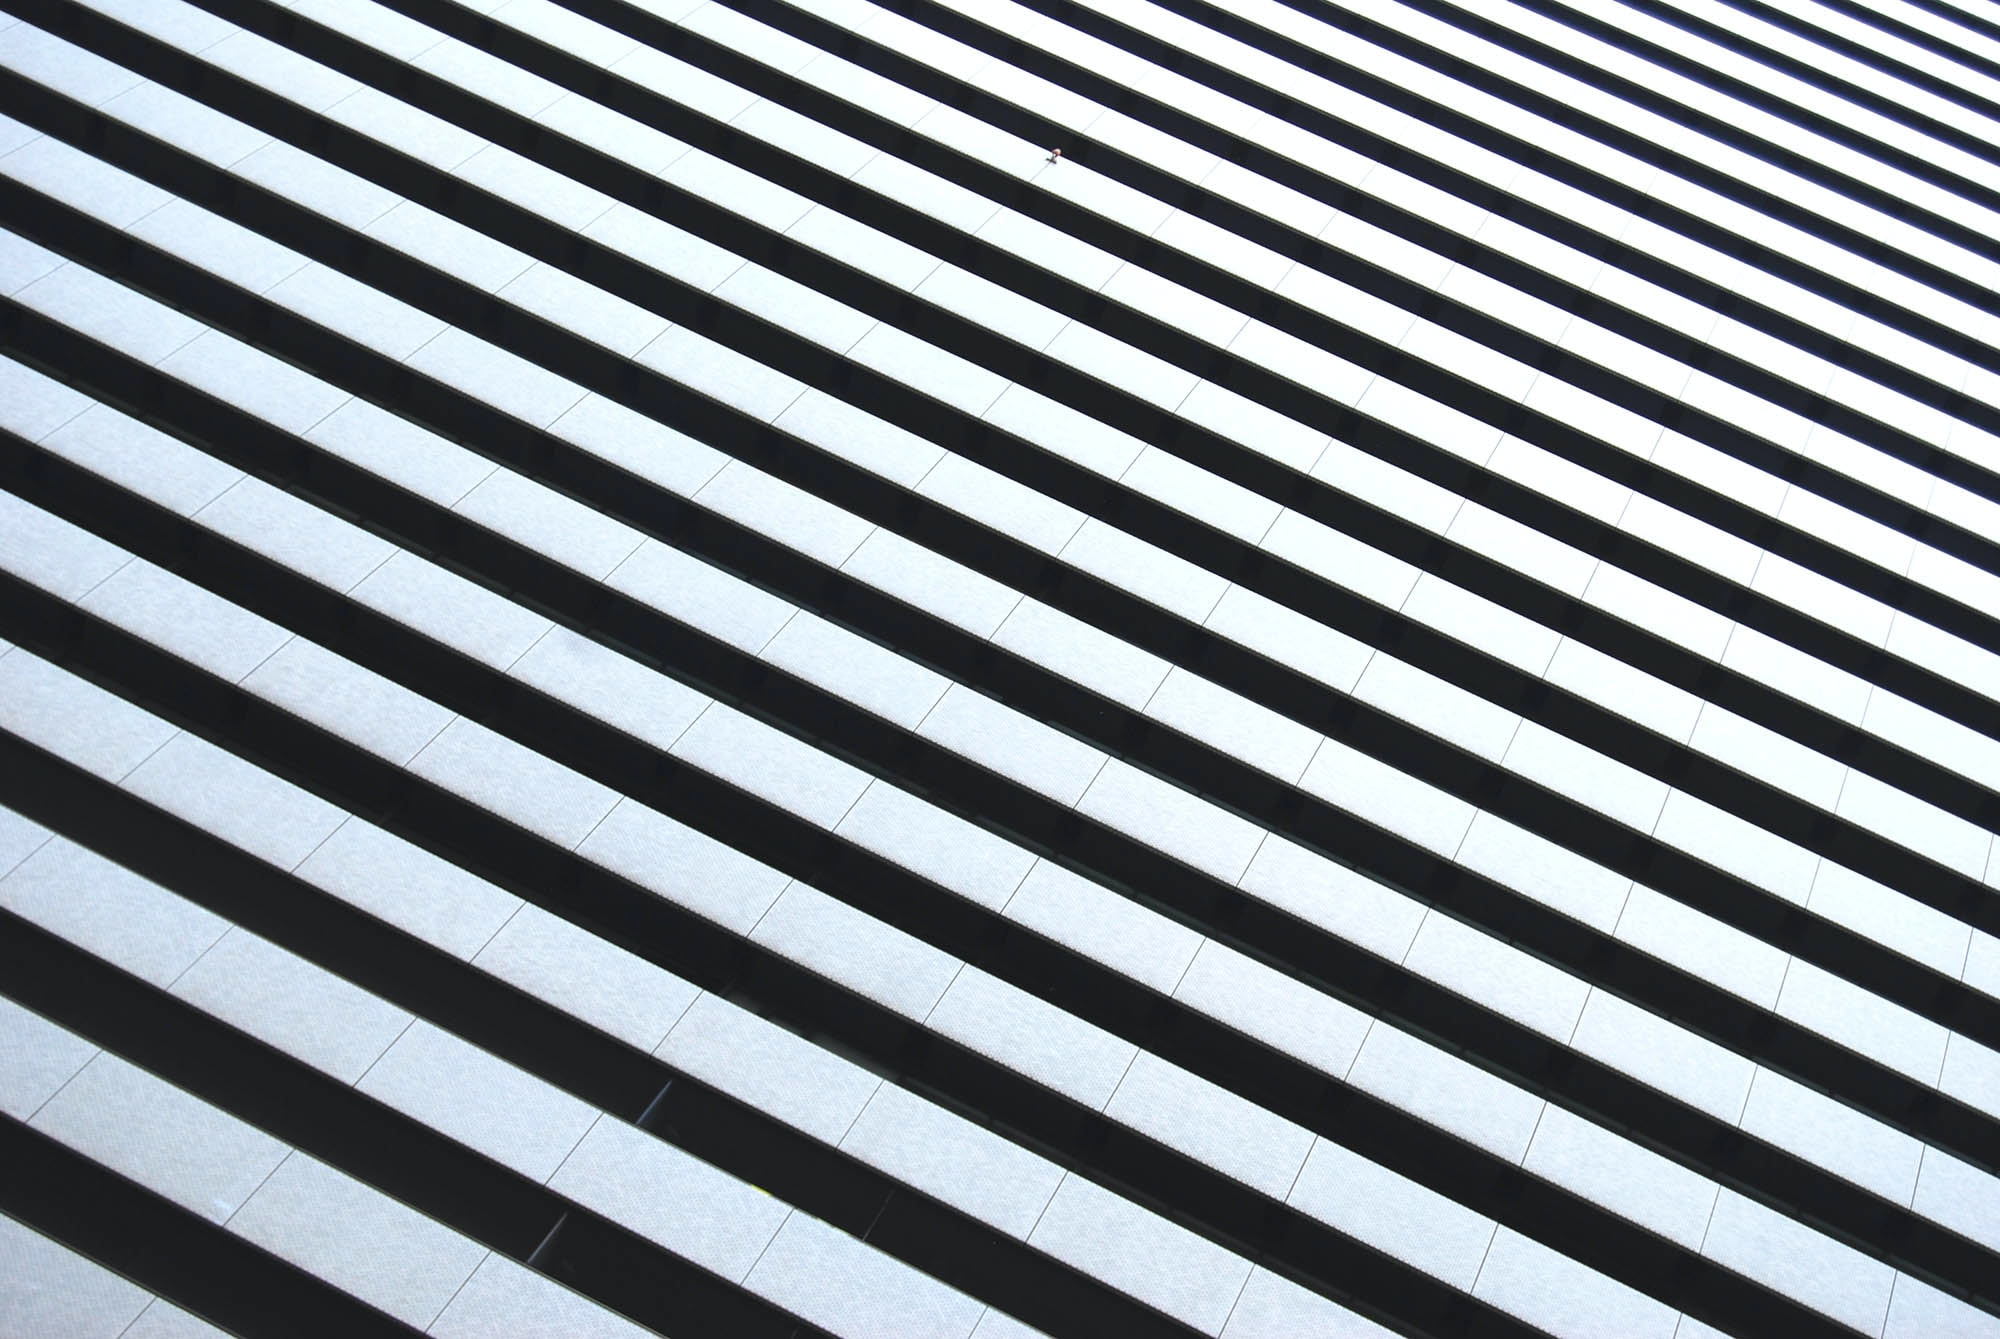 Black and white tiled floor close up in Osaka